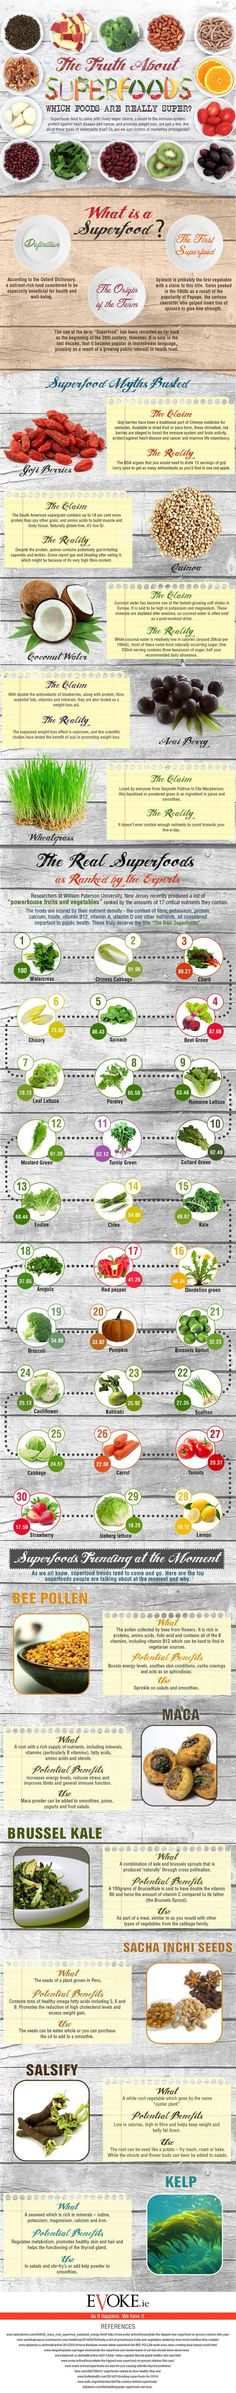 The Truths You Didn't Know About Superfood - check out how many plants make the list of REAL superfoods and microgreens are even more concentrated benefits